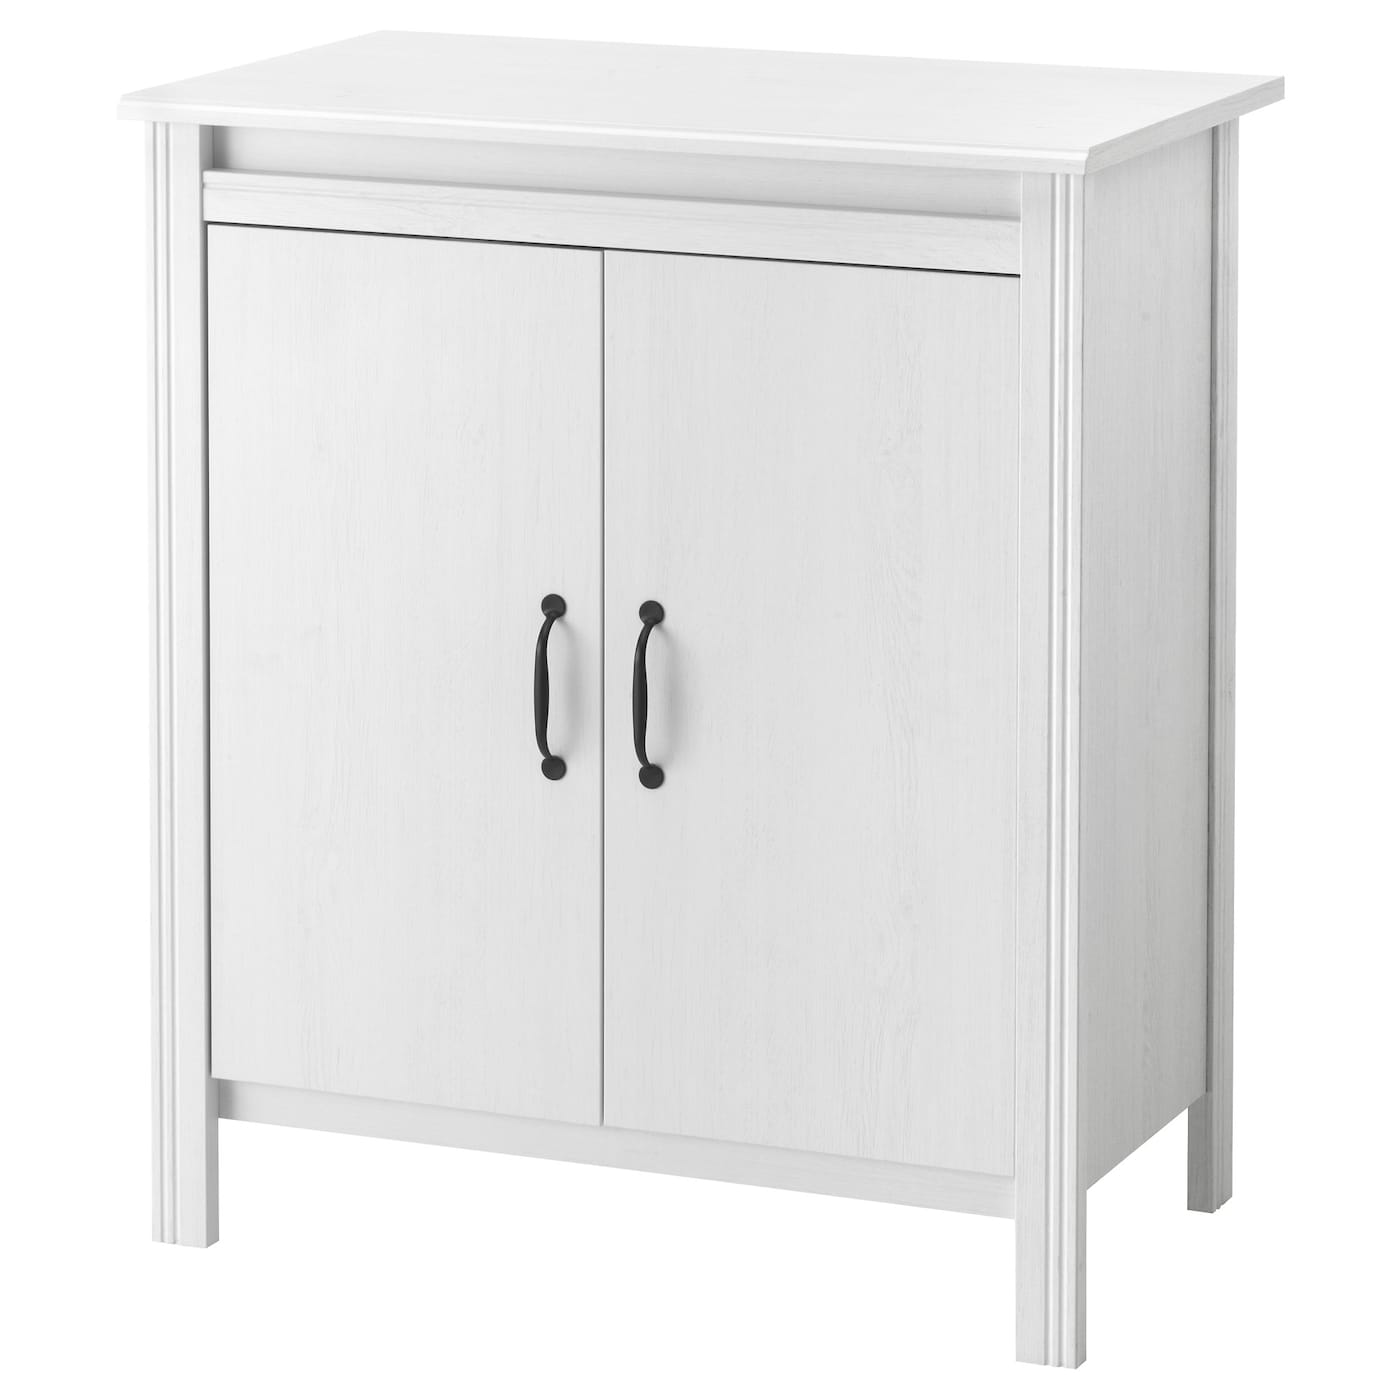 Brusali cabinet with doors white 80x93 cm ikea for Schrank 70 breit 40 tief